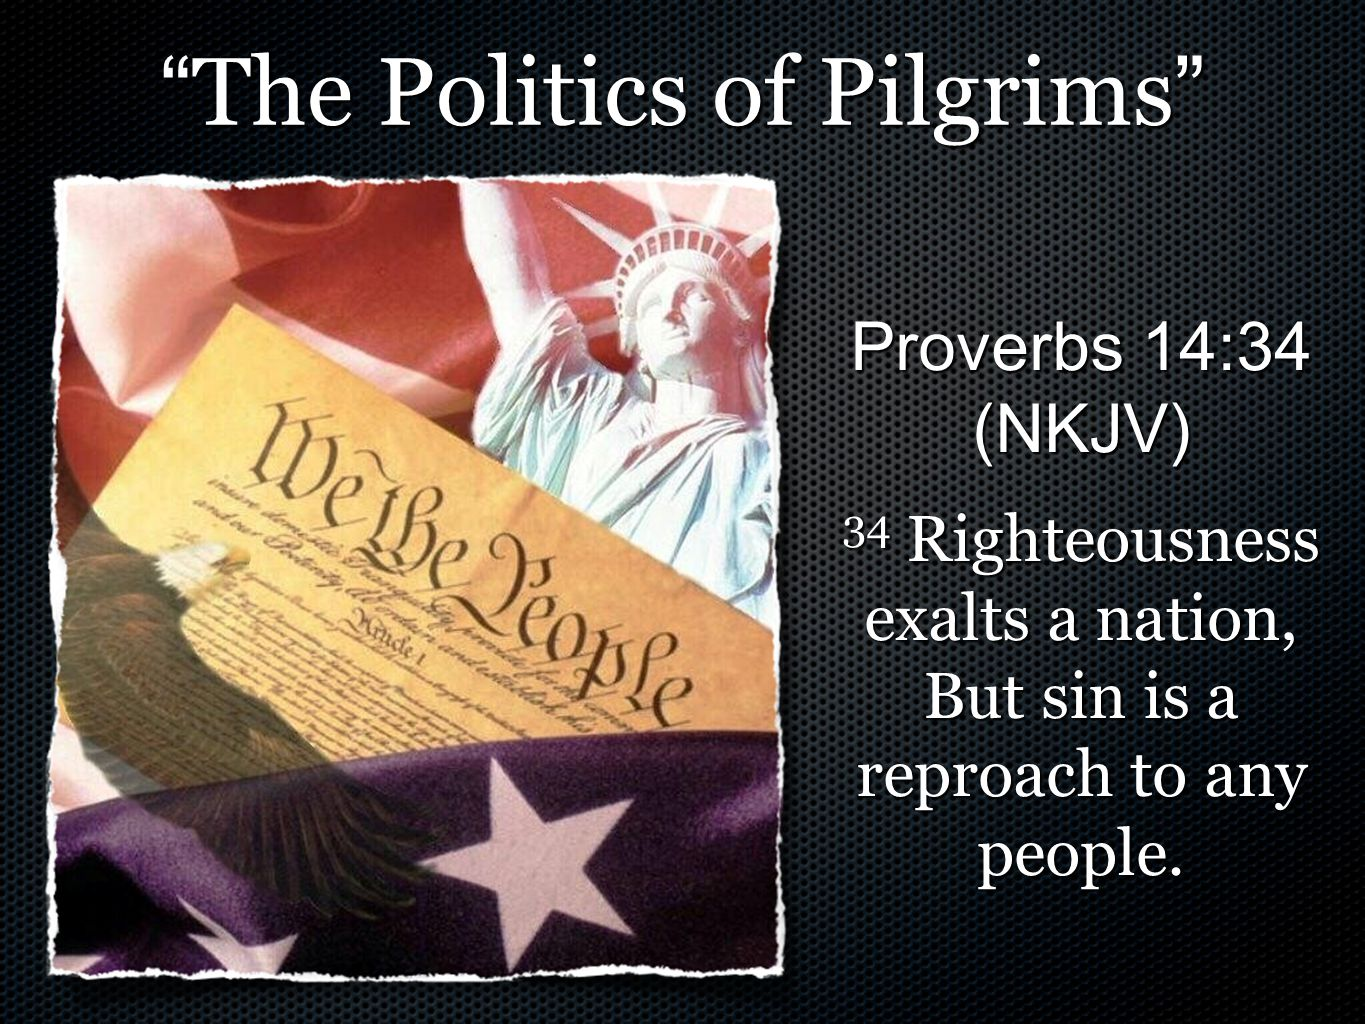 The Politics of Pilgrims 1 Timothy 2:1-3 (NKJV) 1 Therefore I exhort first of all that supplications, prayers, intercessions, and giving of thanks be made for all men,